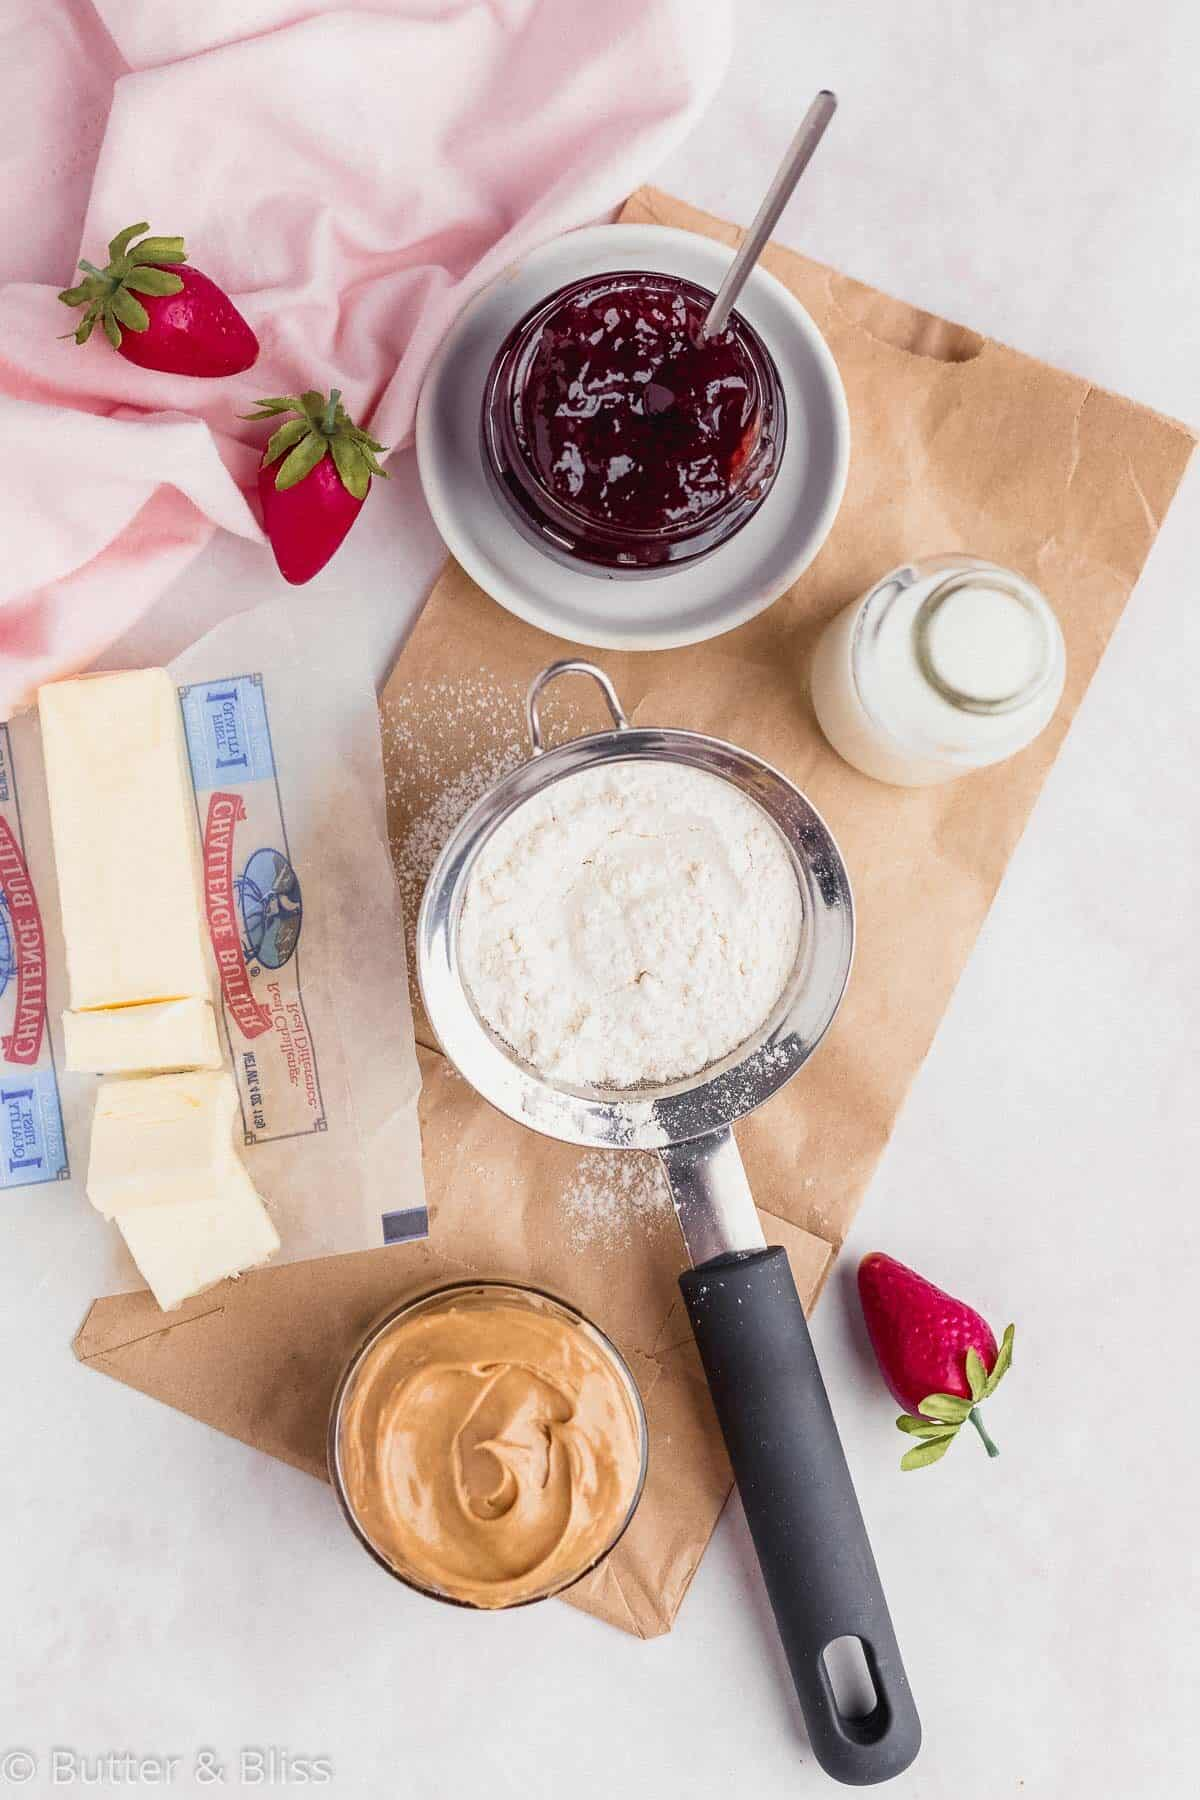 Ingredients for peanut butter and jelly scones